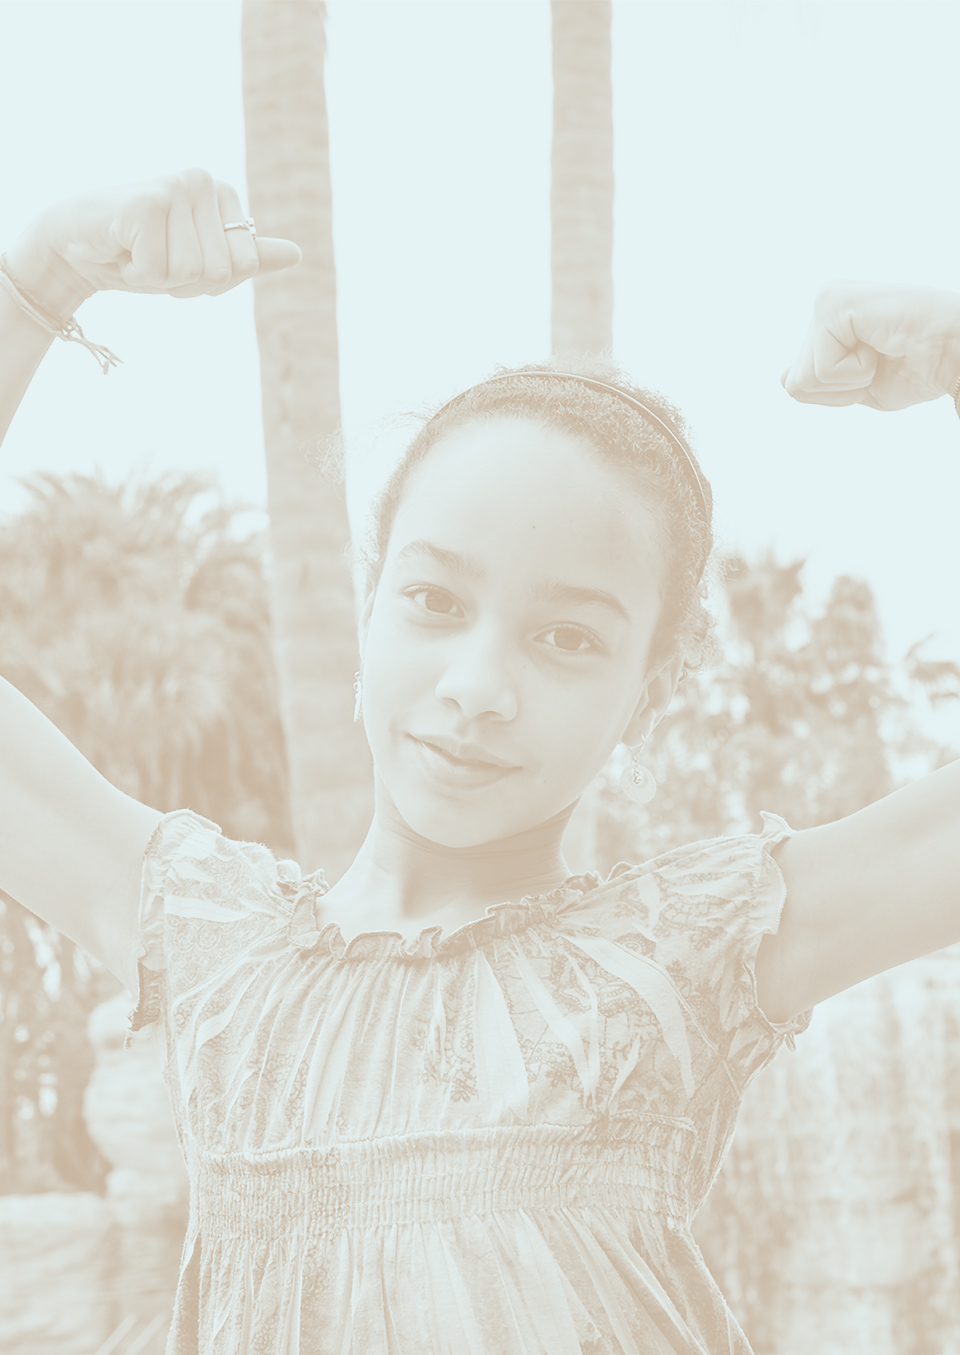 Young woman with arms up, flexing to demonstrate her strength.